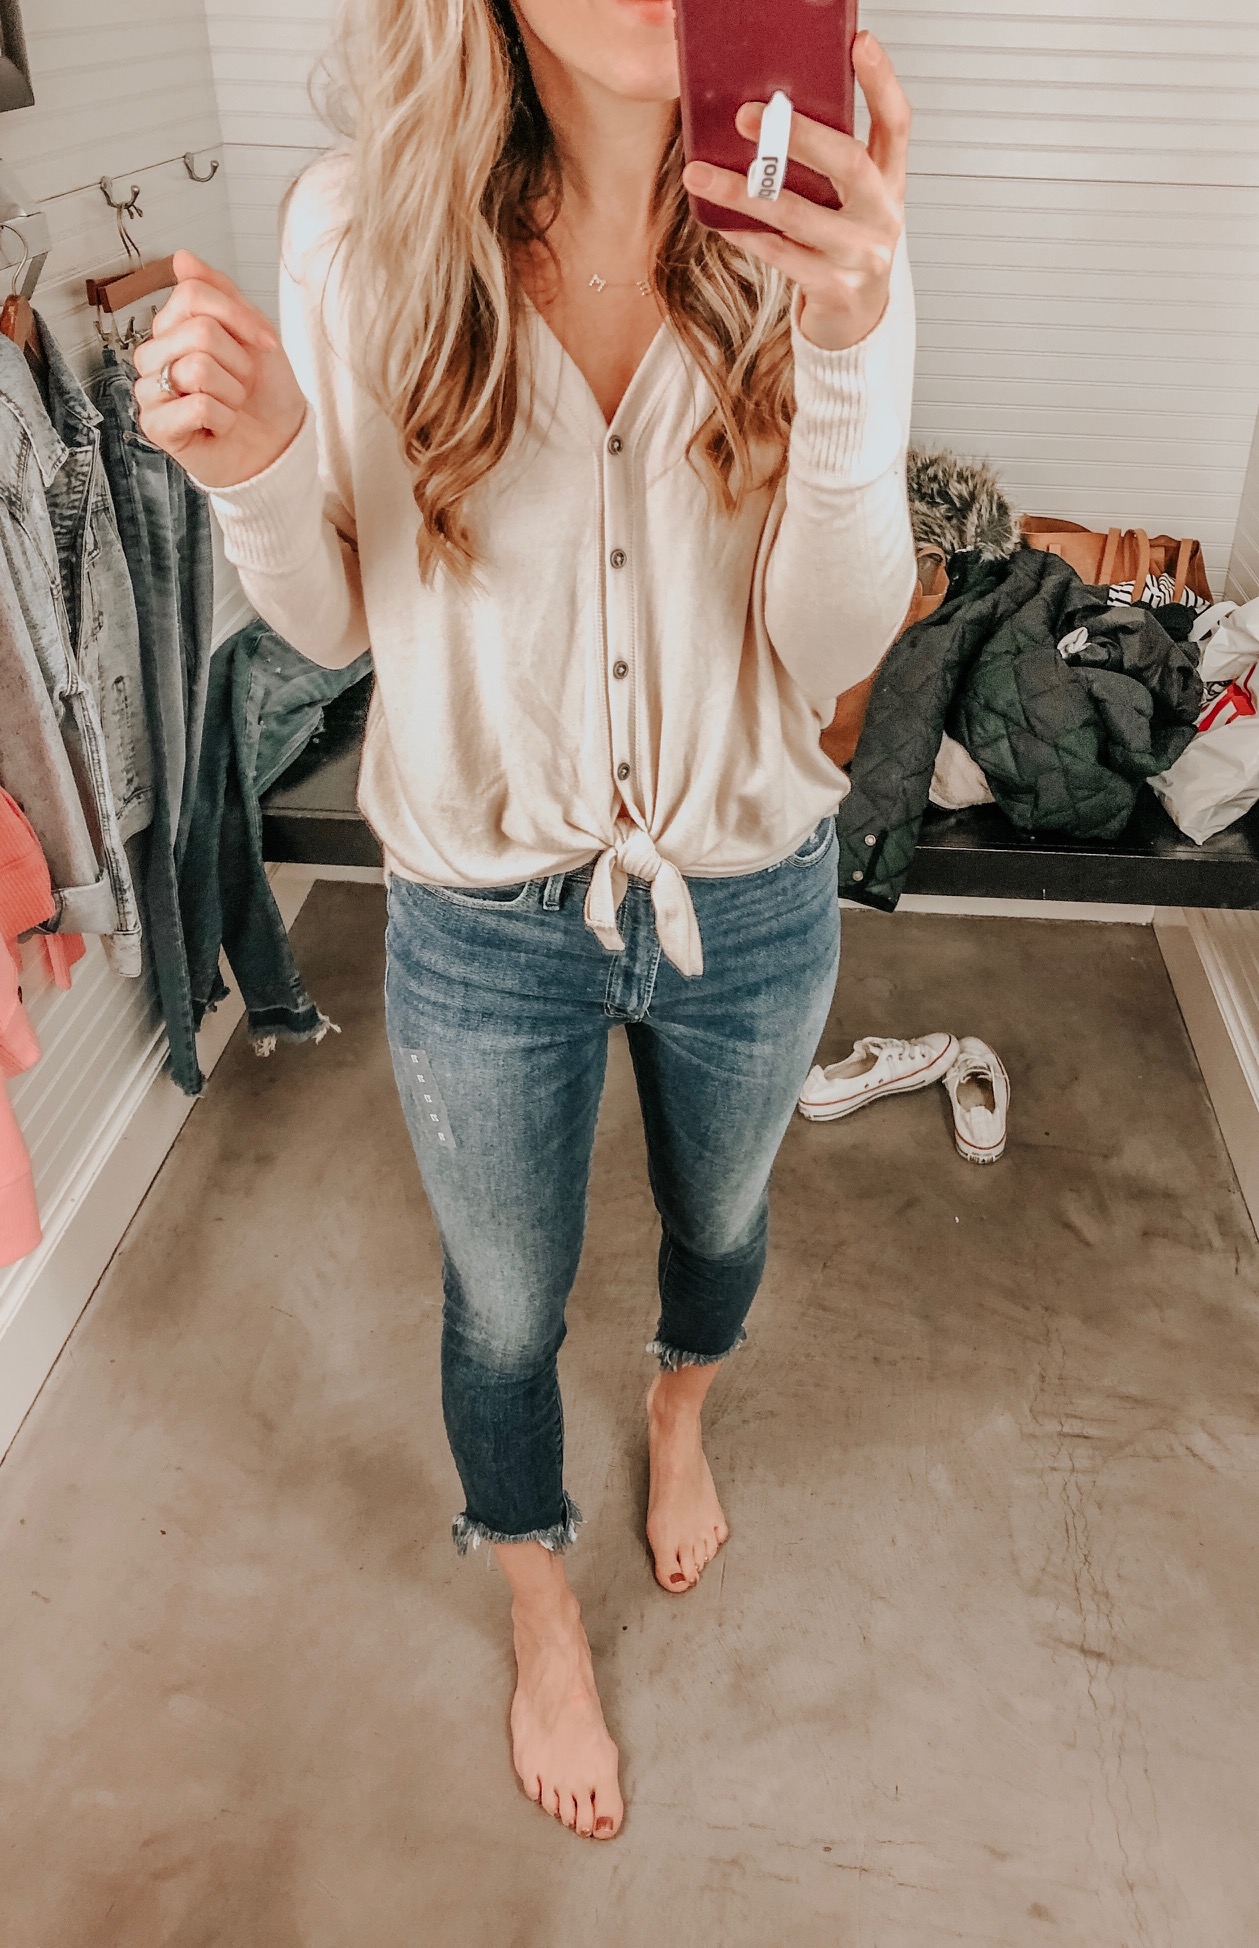 Abercrombie Try On Session in January